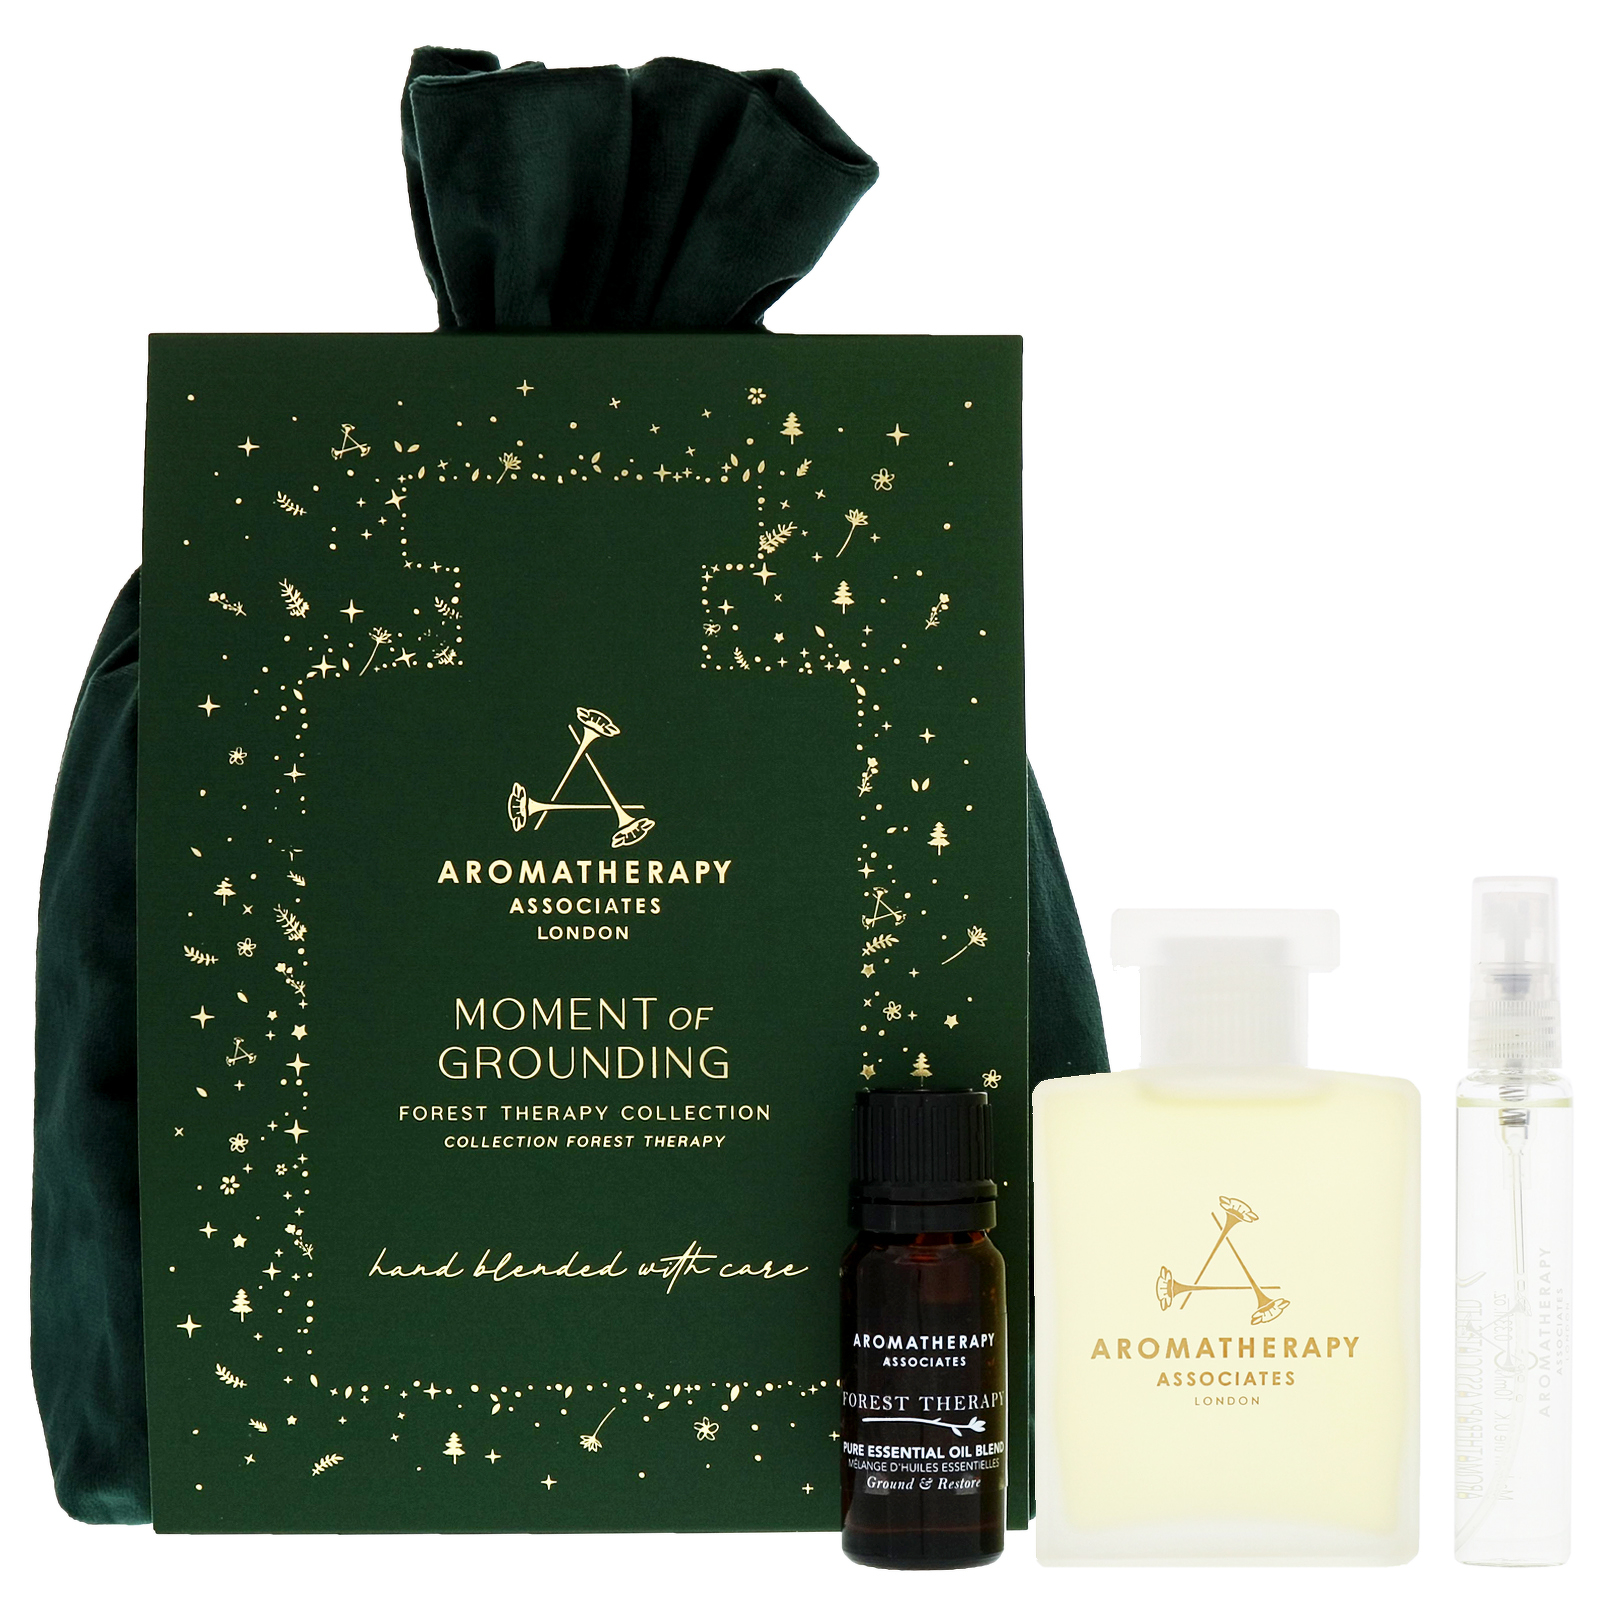 Aromatherapy Associates Gifting Moment Of Grounding